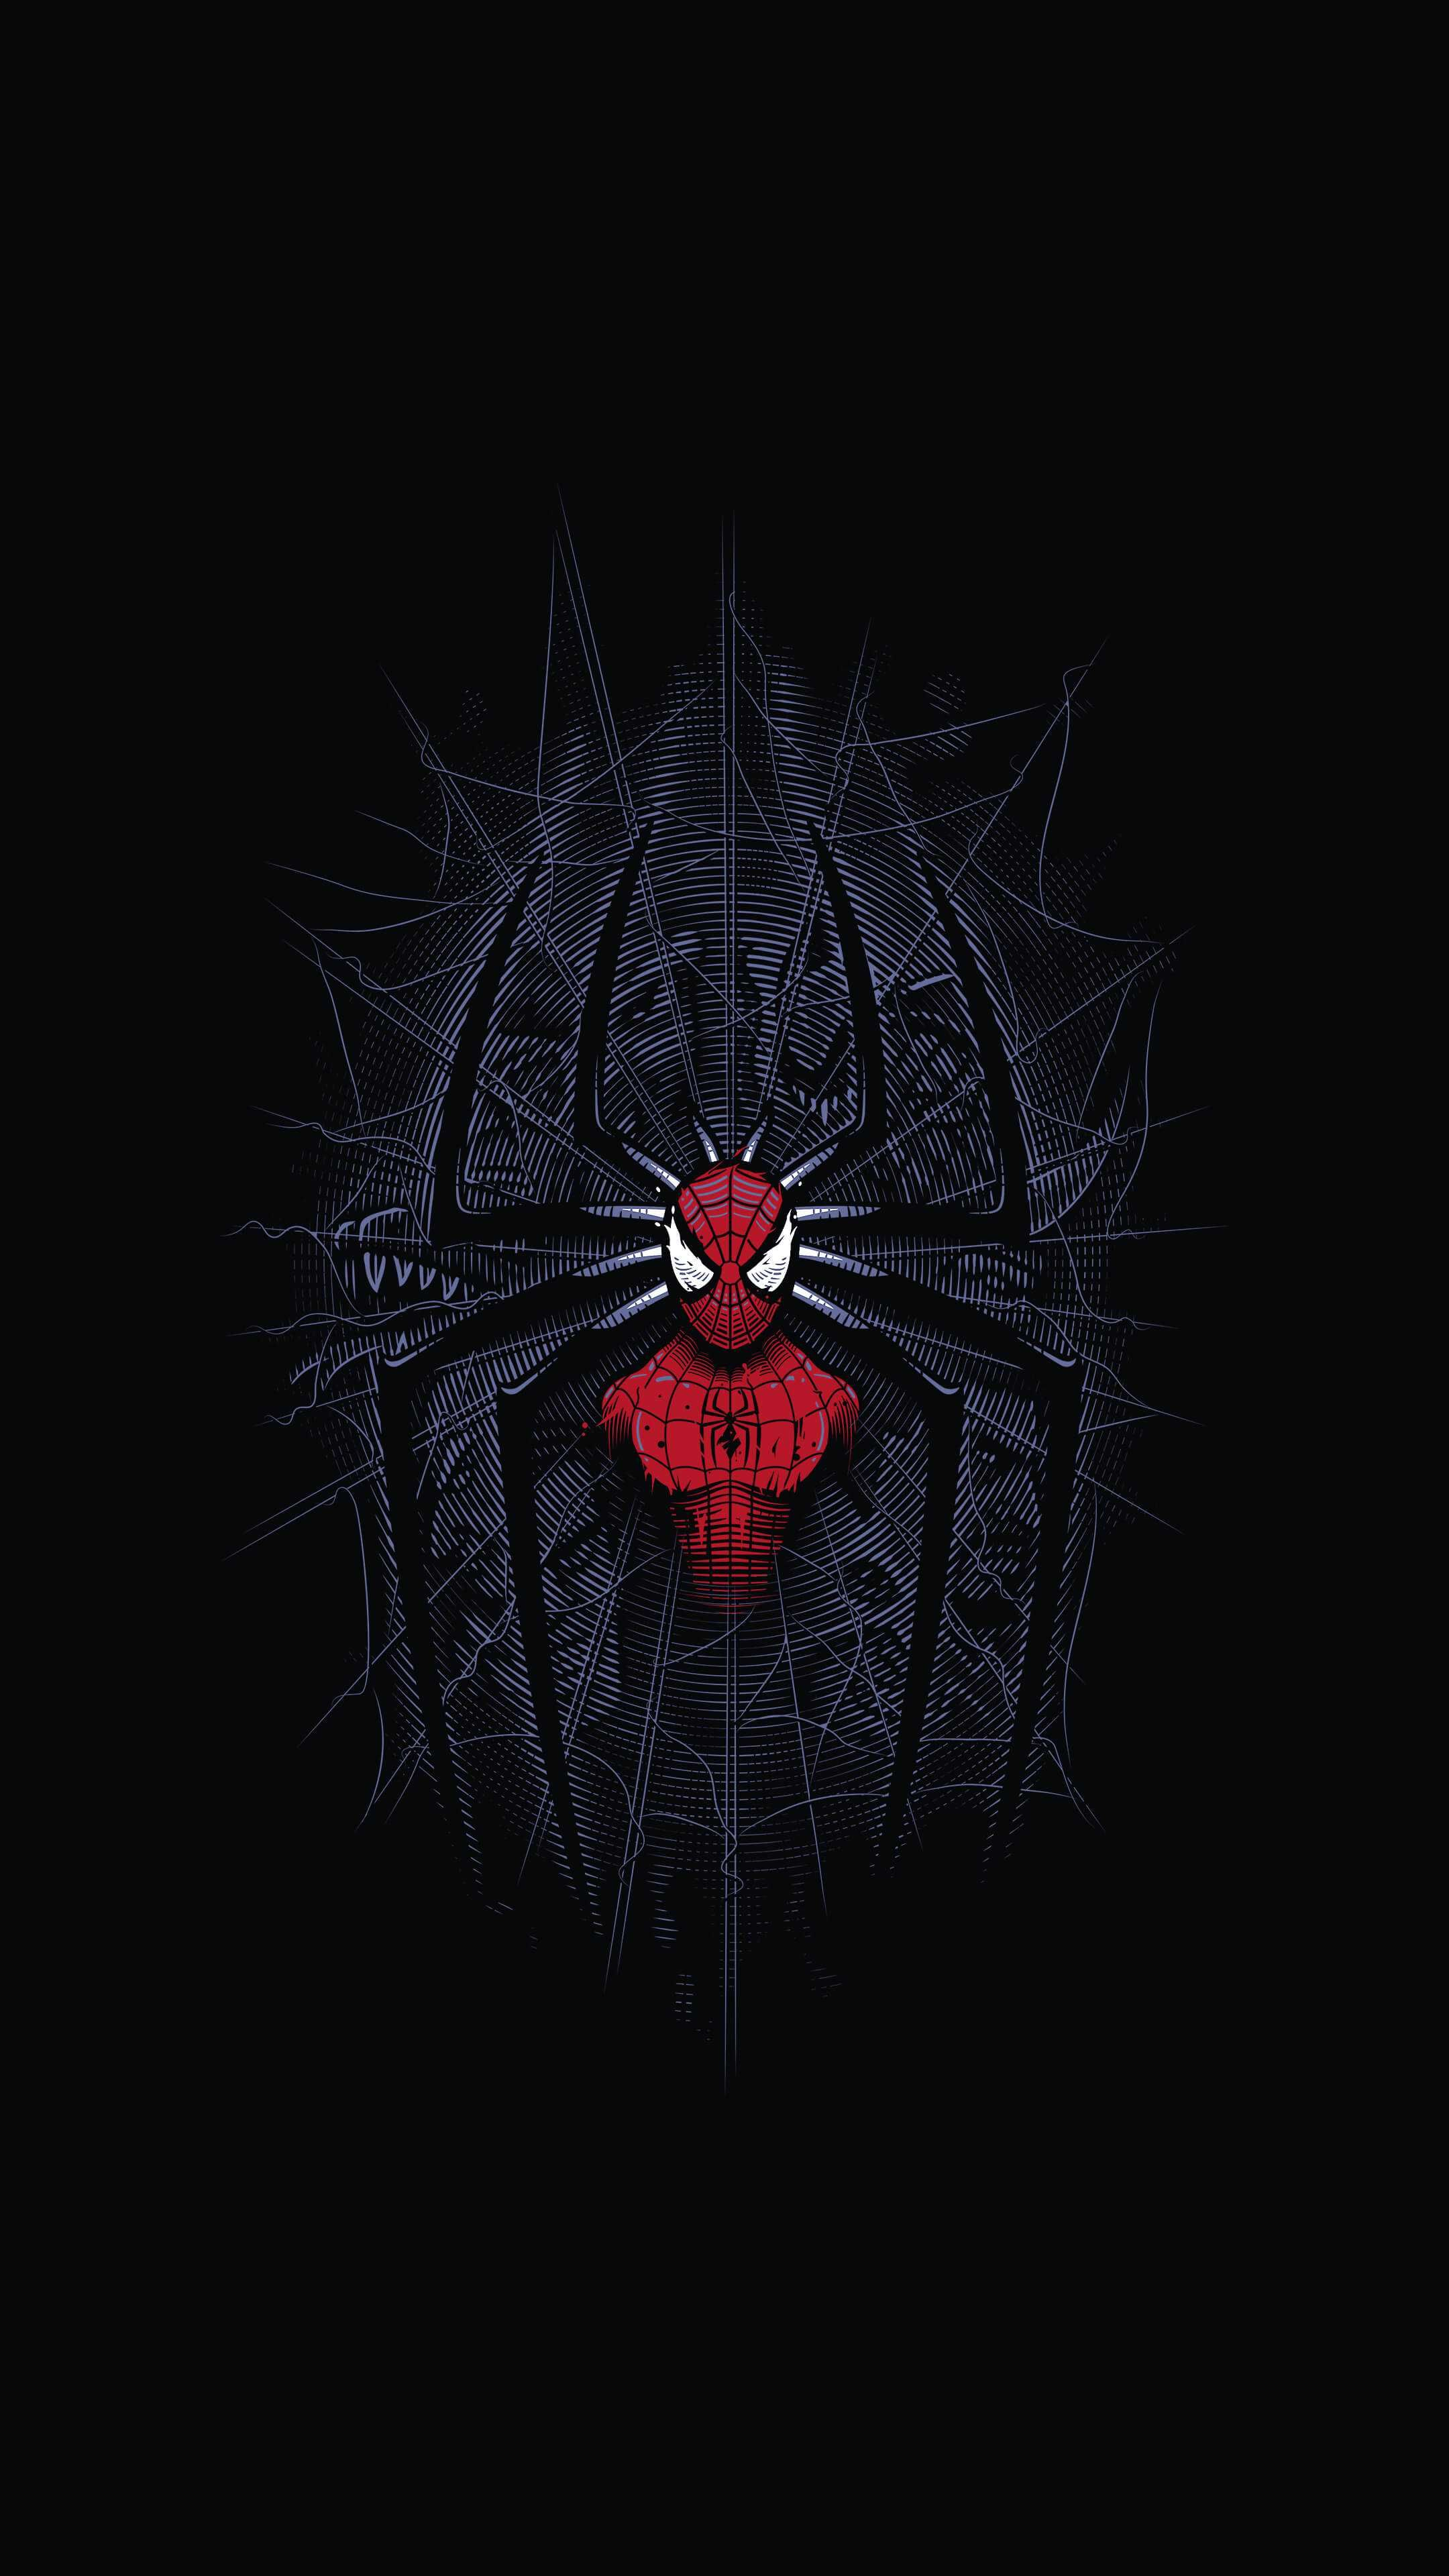 Spider man web iPhone Wallpaper (con imágenes) Fondo de